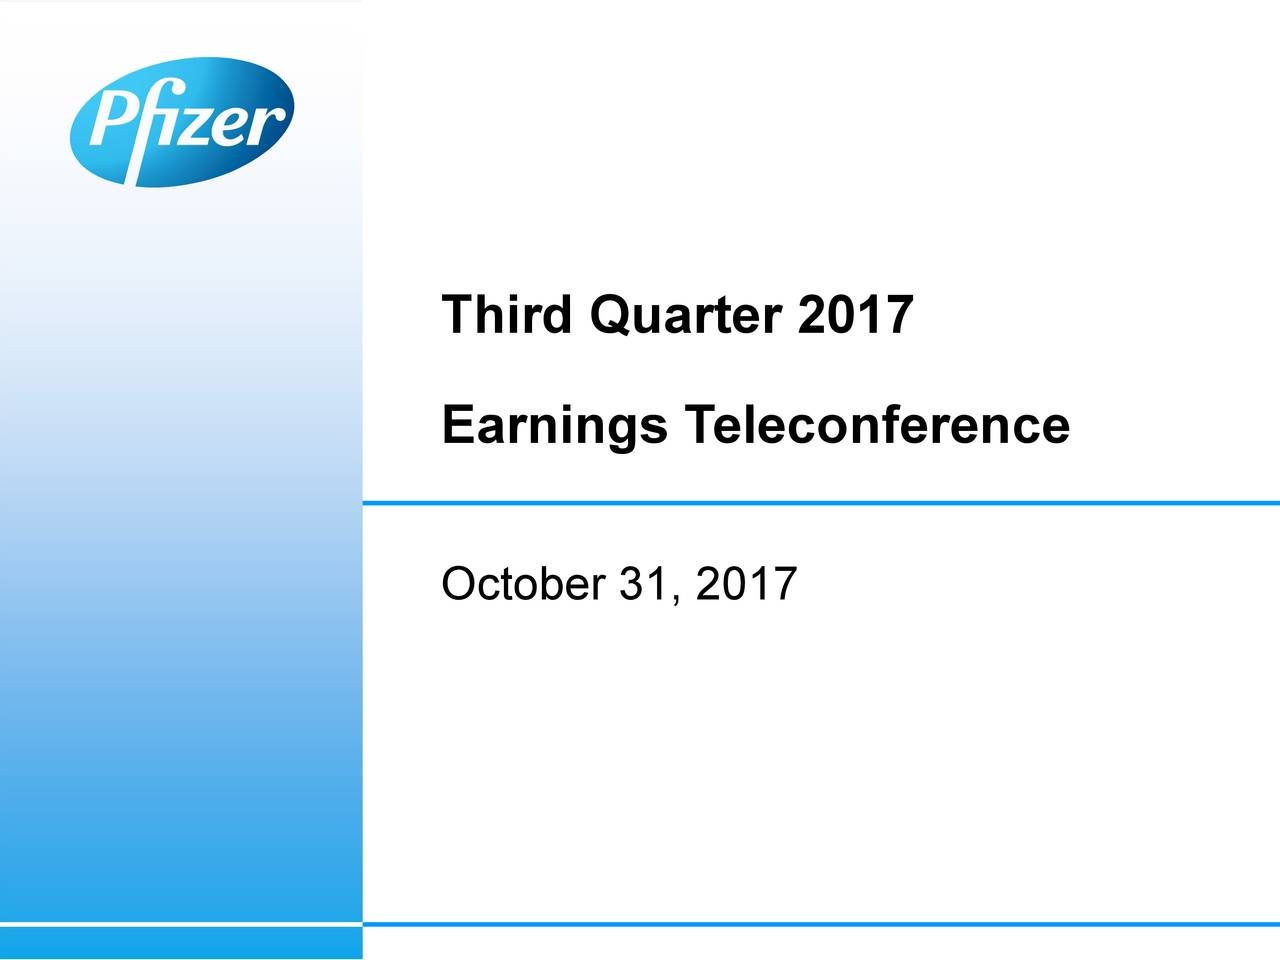 Earnings Teleconference October 31, 2017